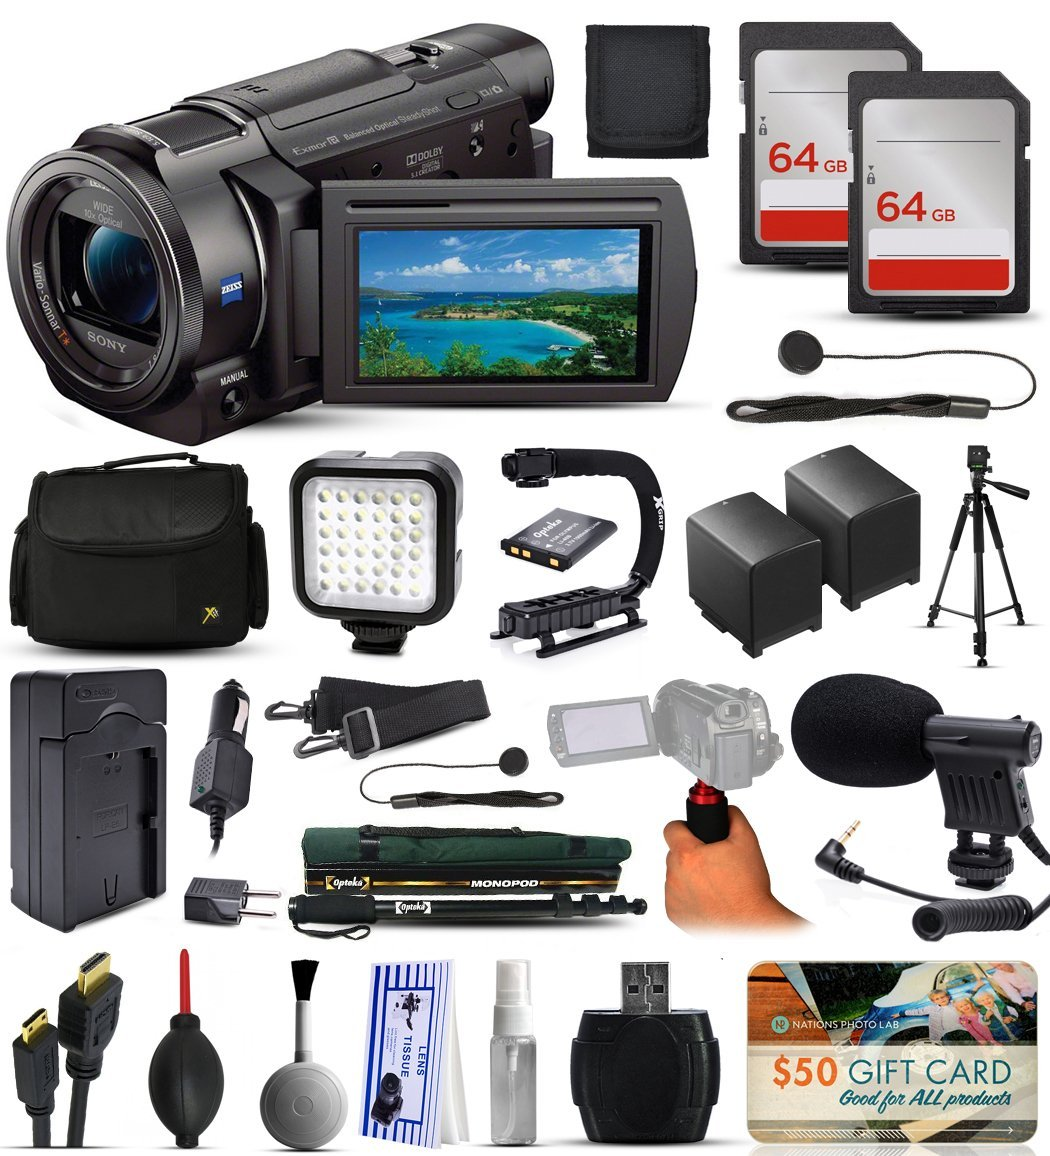 Amazon.com : Sony FDR-AX33 4K Ultra HD Handycam Camcorder Video Camera + 128GB Boardcasting Filmmaker's Package with LED Night Light + Tripod + Monopod + Action Stabilizer + Handgrip + Microphone + More